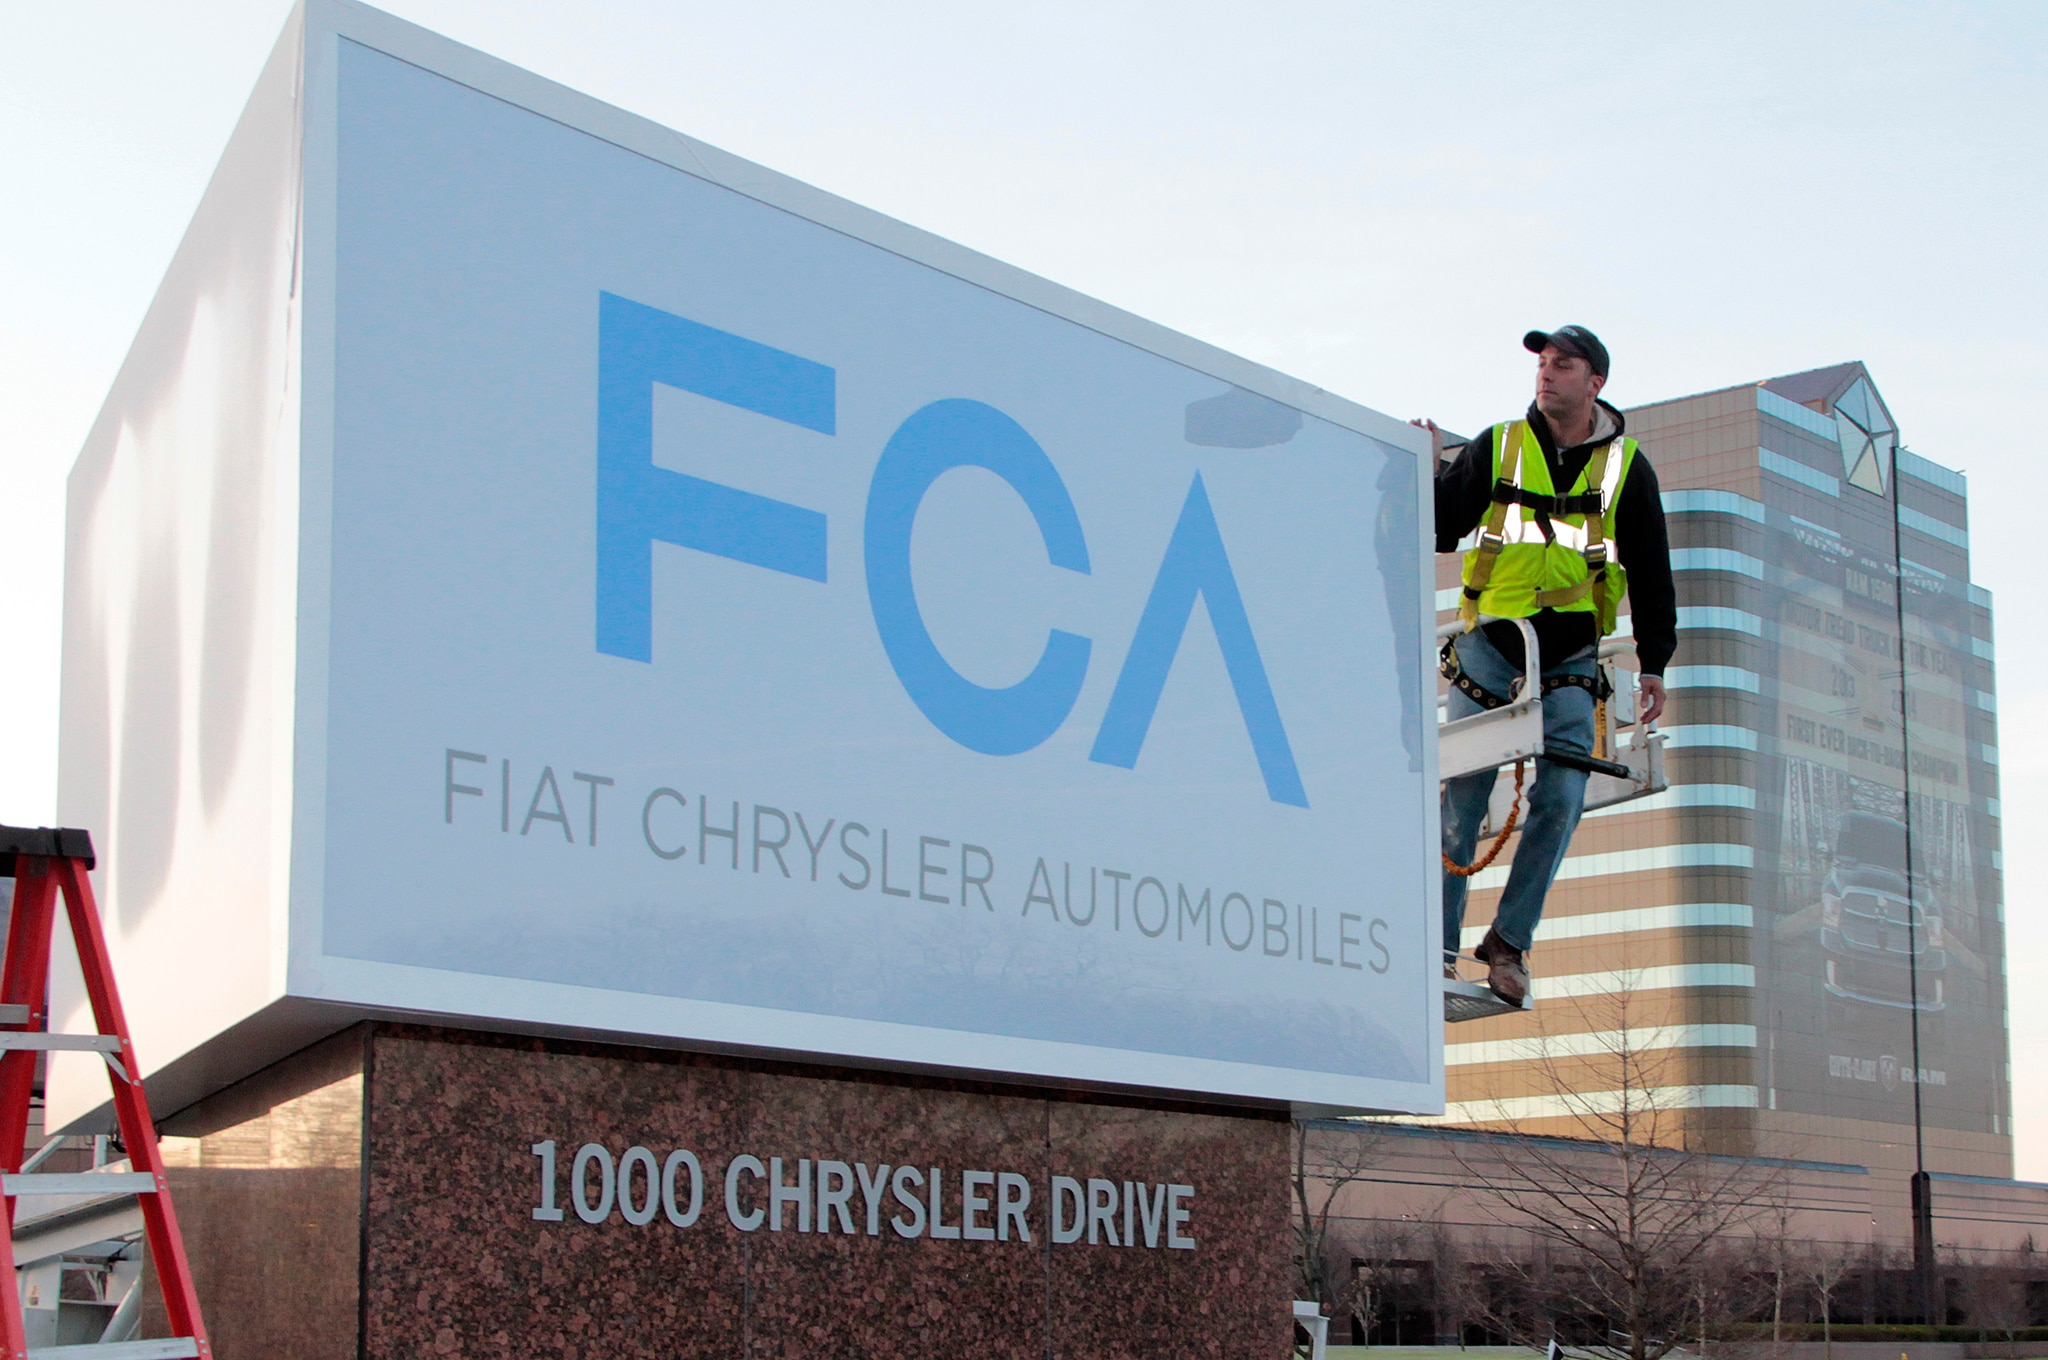 Fiat Chrysler Automobiles New Sign Construction 42